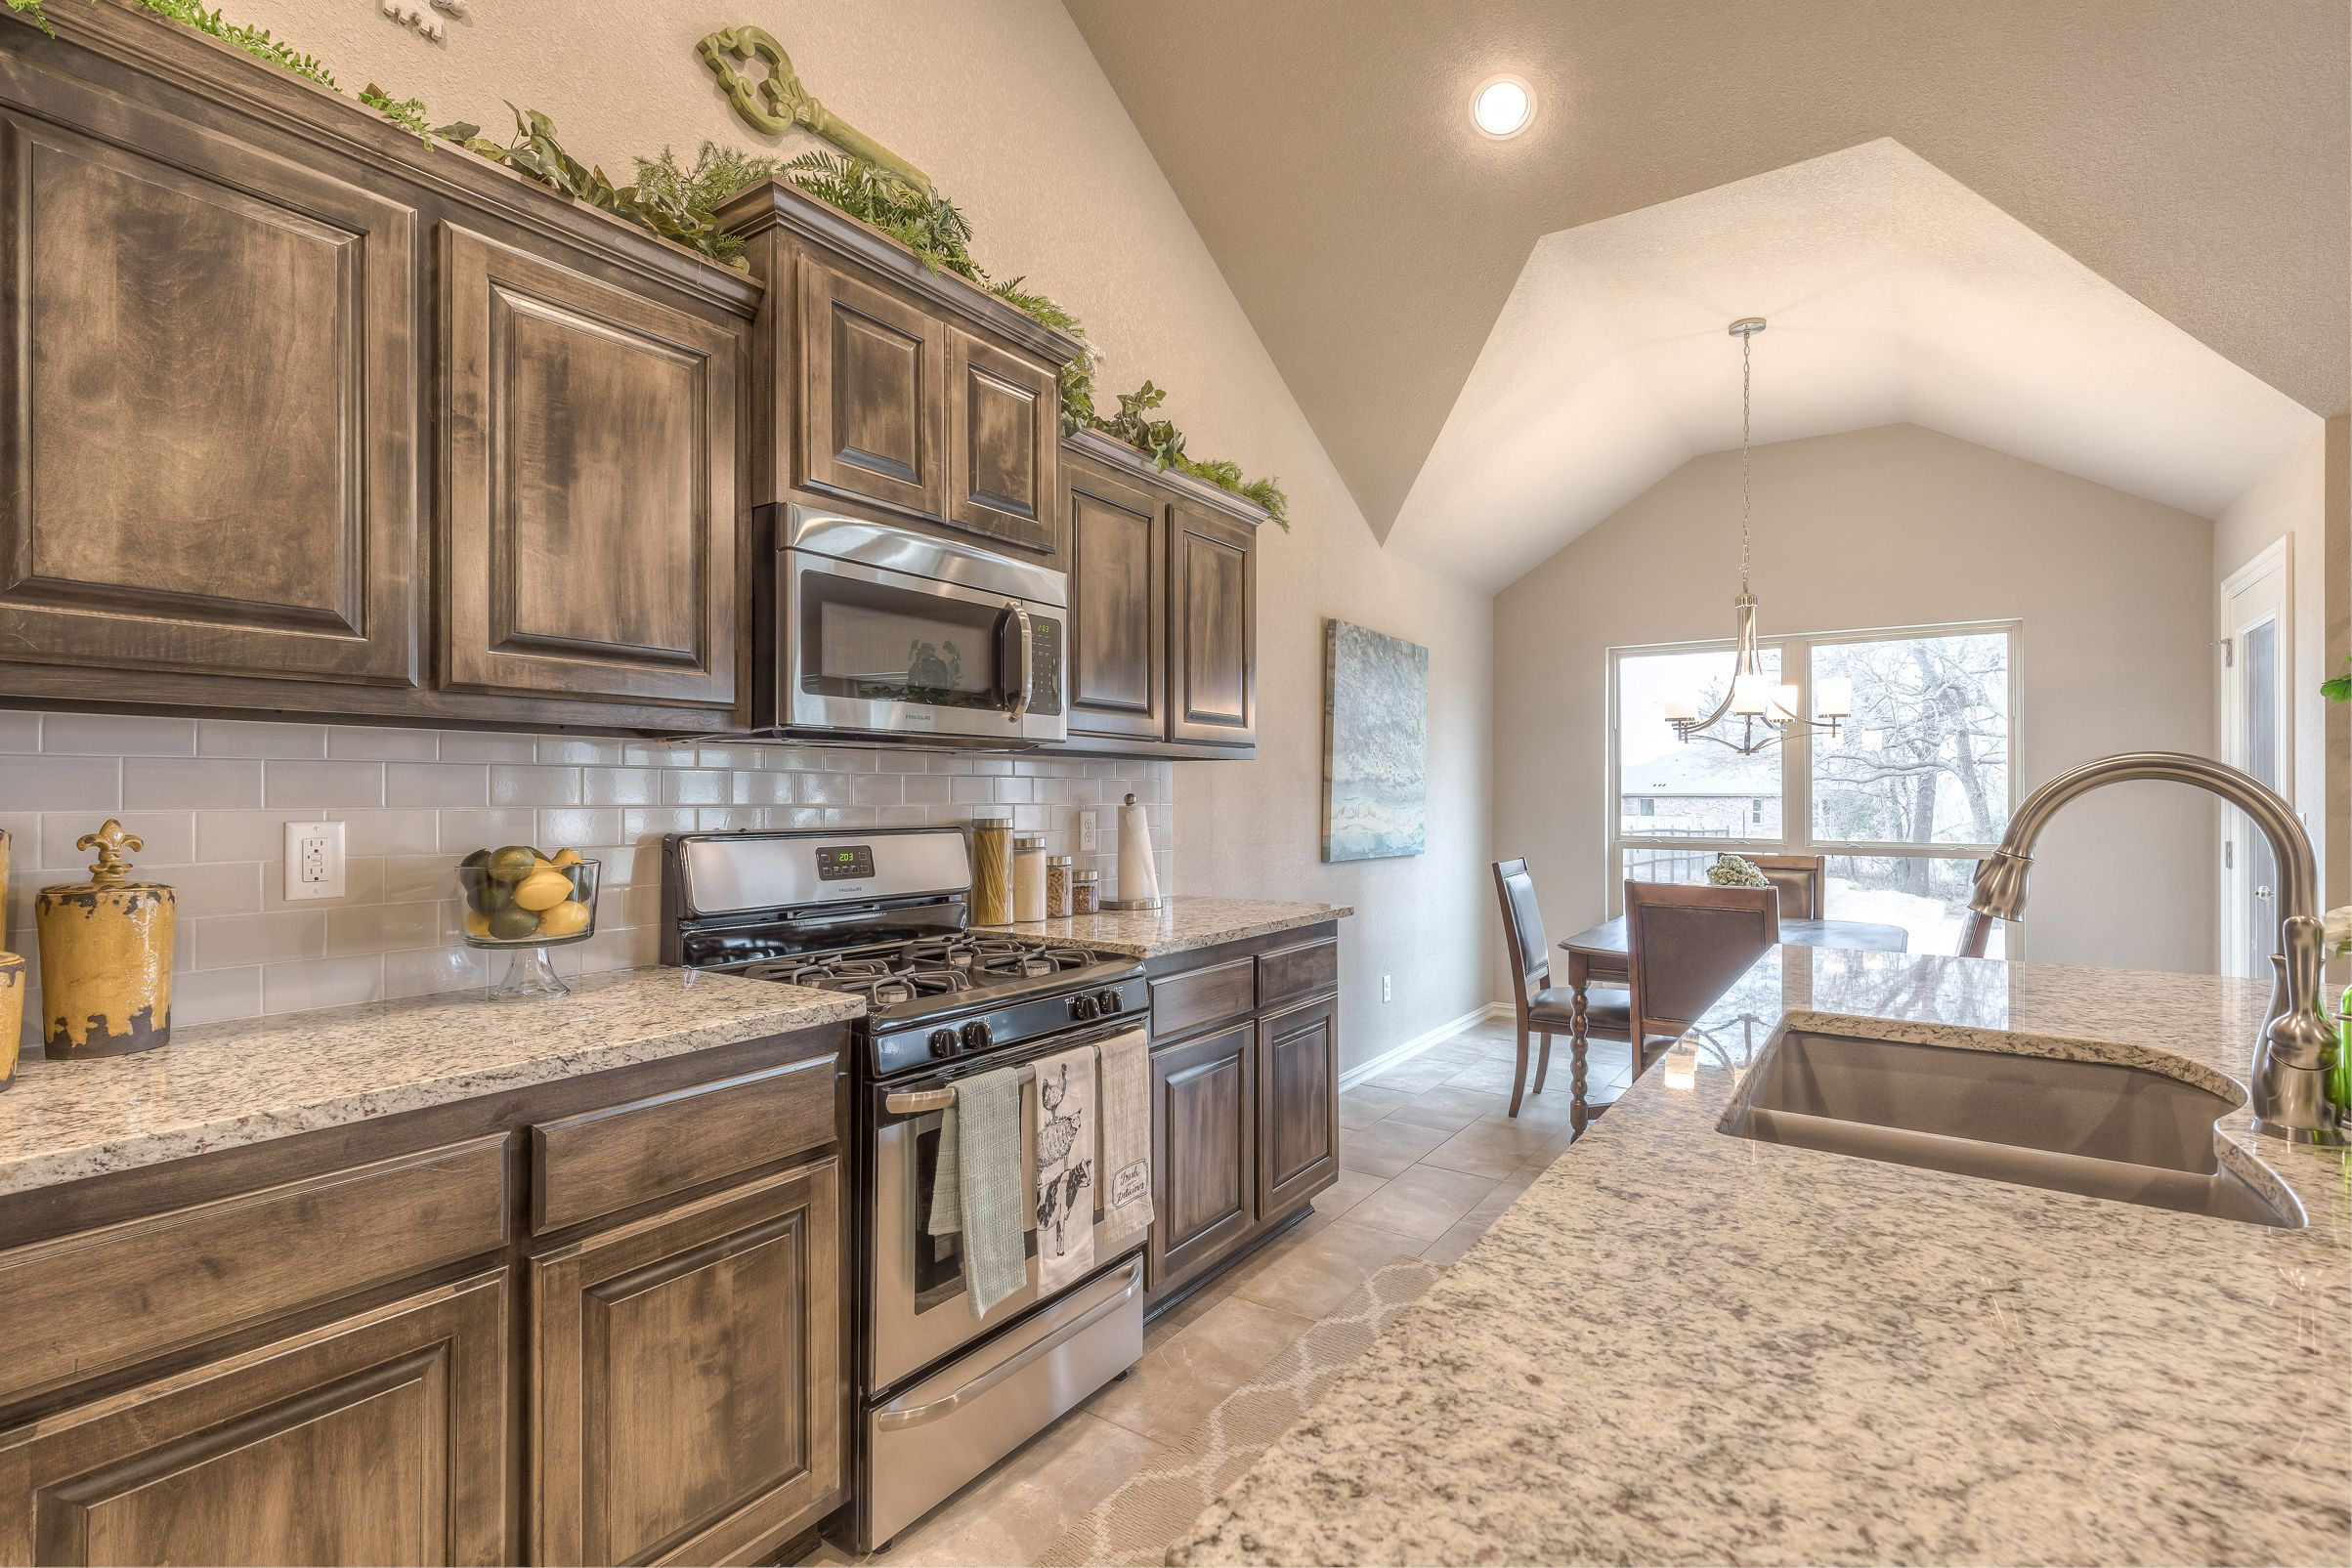 Kitchen featured in the Hampton IV 3C By Concept Builders, Inc in Tulsa, OK